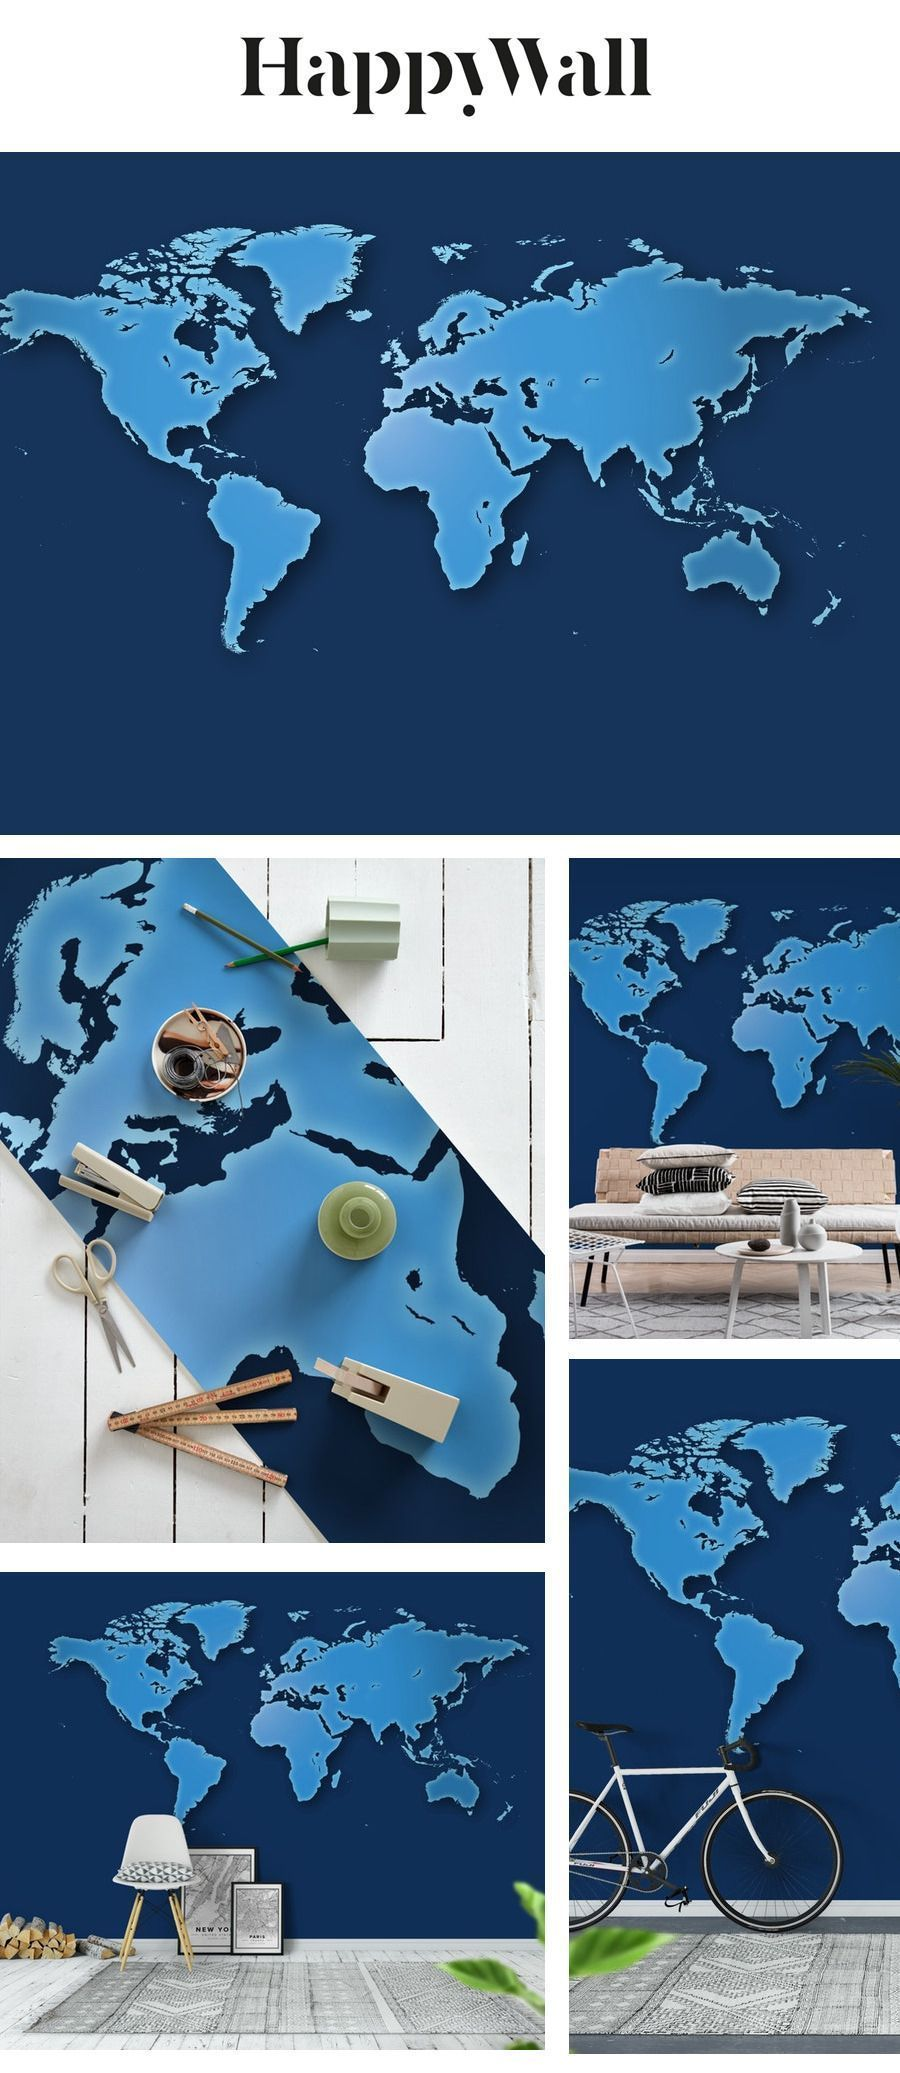 World map blue Wall Mural / Wallpaper Maps #worldmapmural World map blue wall mural from Happywall #wallmurals #blue #wallpapers #wallmural #happywall #maps #wallpaper #worldmapmural World map blue Wall Mural / Wallpaper Maps #worldmapmural World map blue wall mural from Happywall #wallmurals #blue #wallpapers #wallmural #happywall #maps #wallpaper #worldmapmural World map blue Wall Mural / Wallpaper Maps #worldmapmural World map blue wall mural from Happywall #wallmurals #blue #wallpapers #wall #worldmapmural